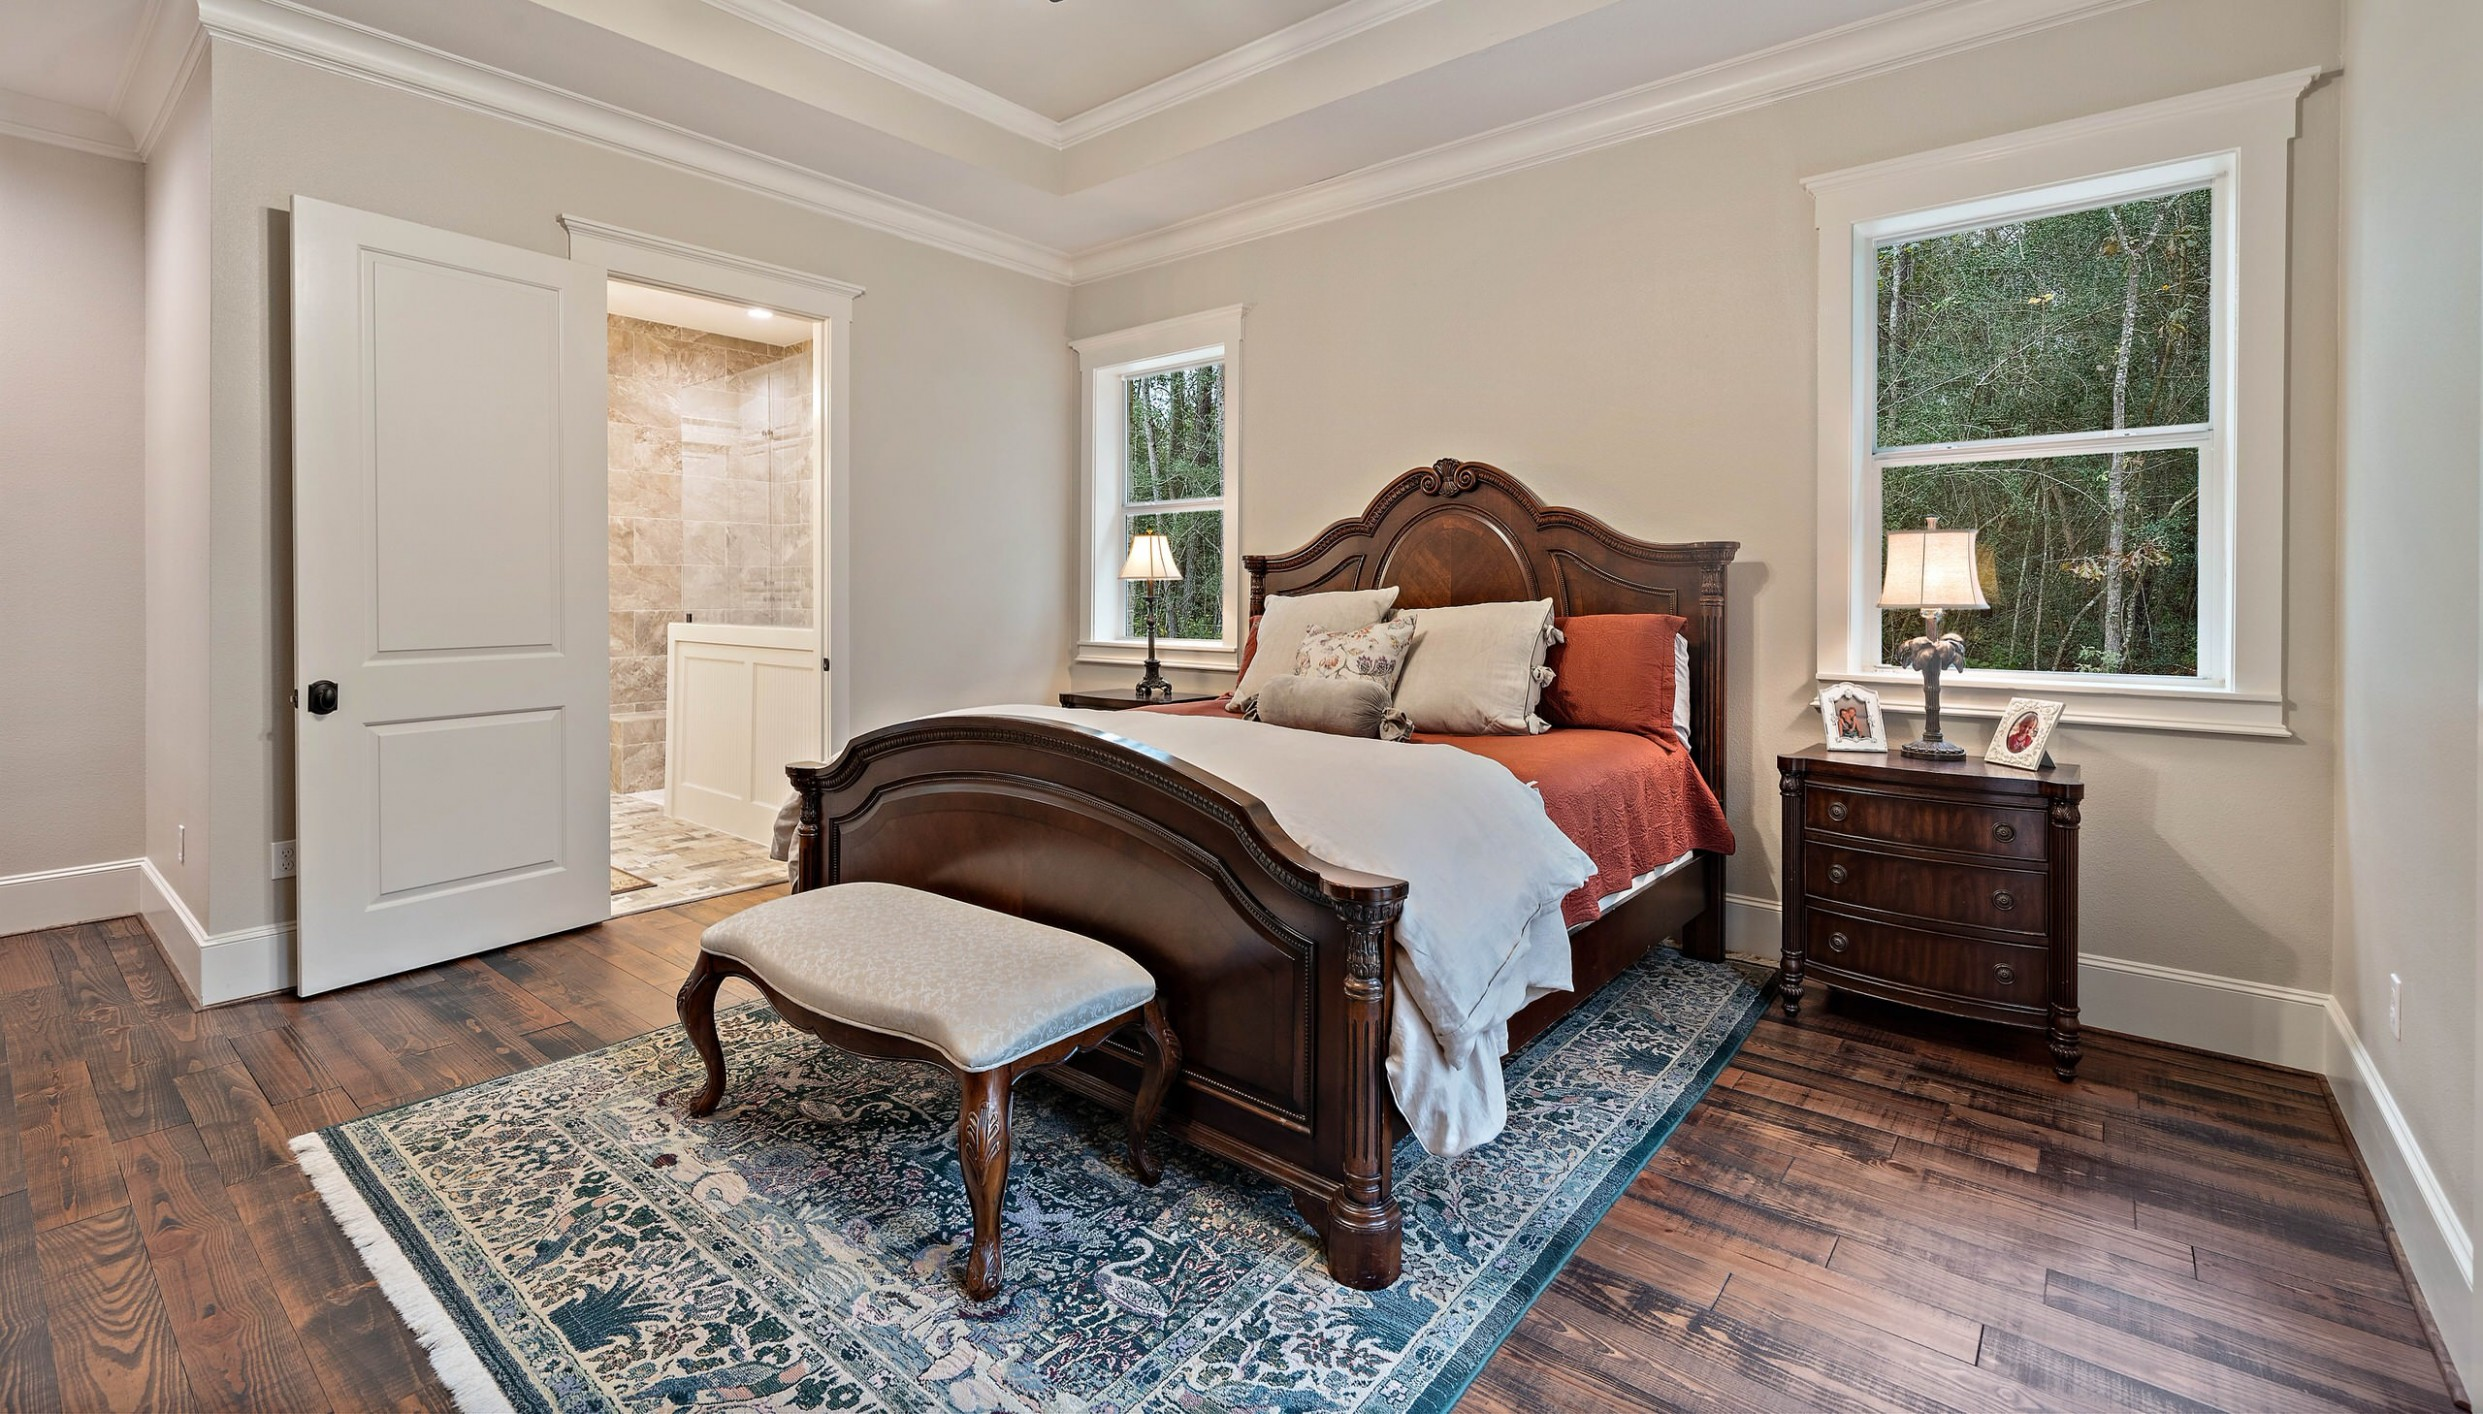 Must See Bedroom Pictures & Ideas Before You Renovate - 11  Houzz - Bedroom Ideas Houzz